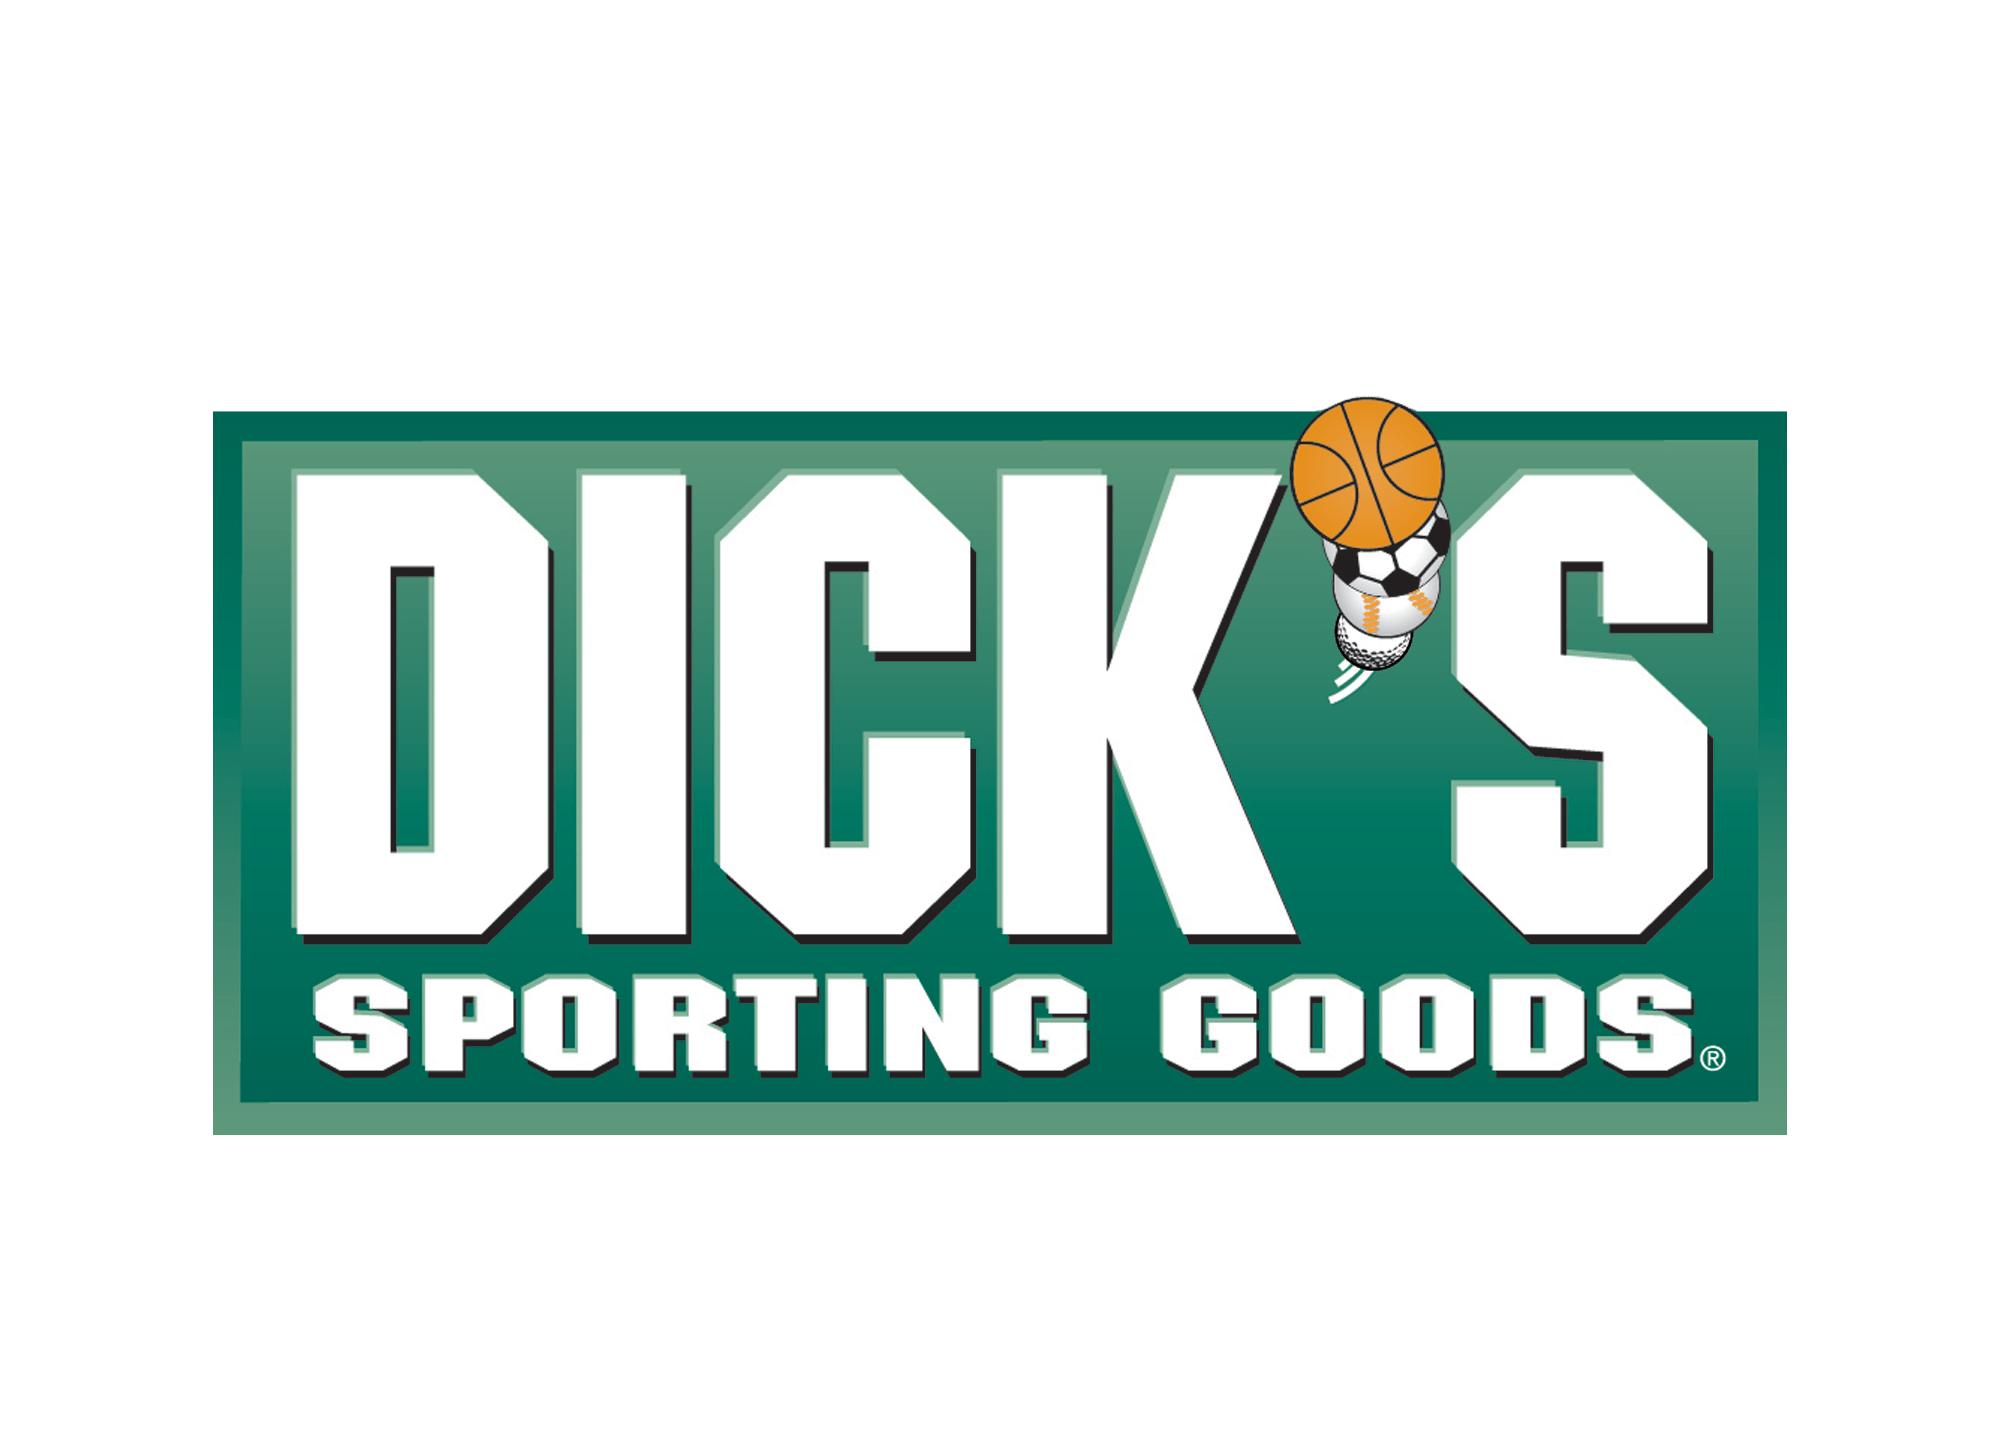 dick's sporting goods logo_239898